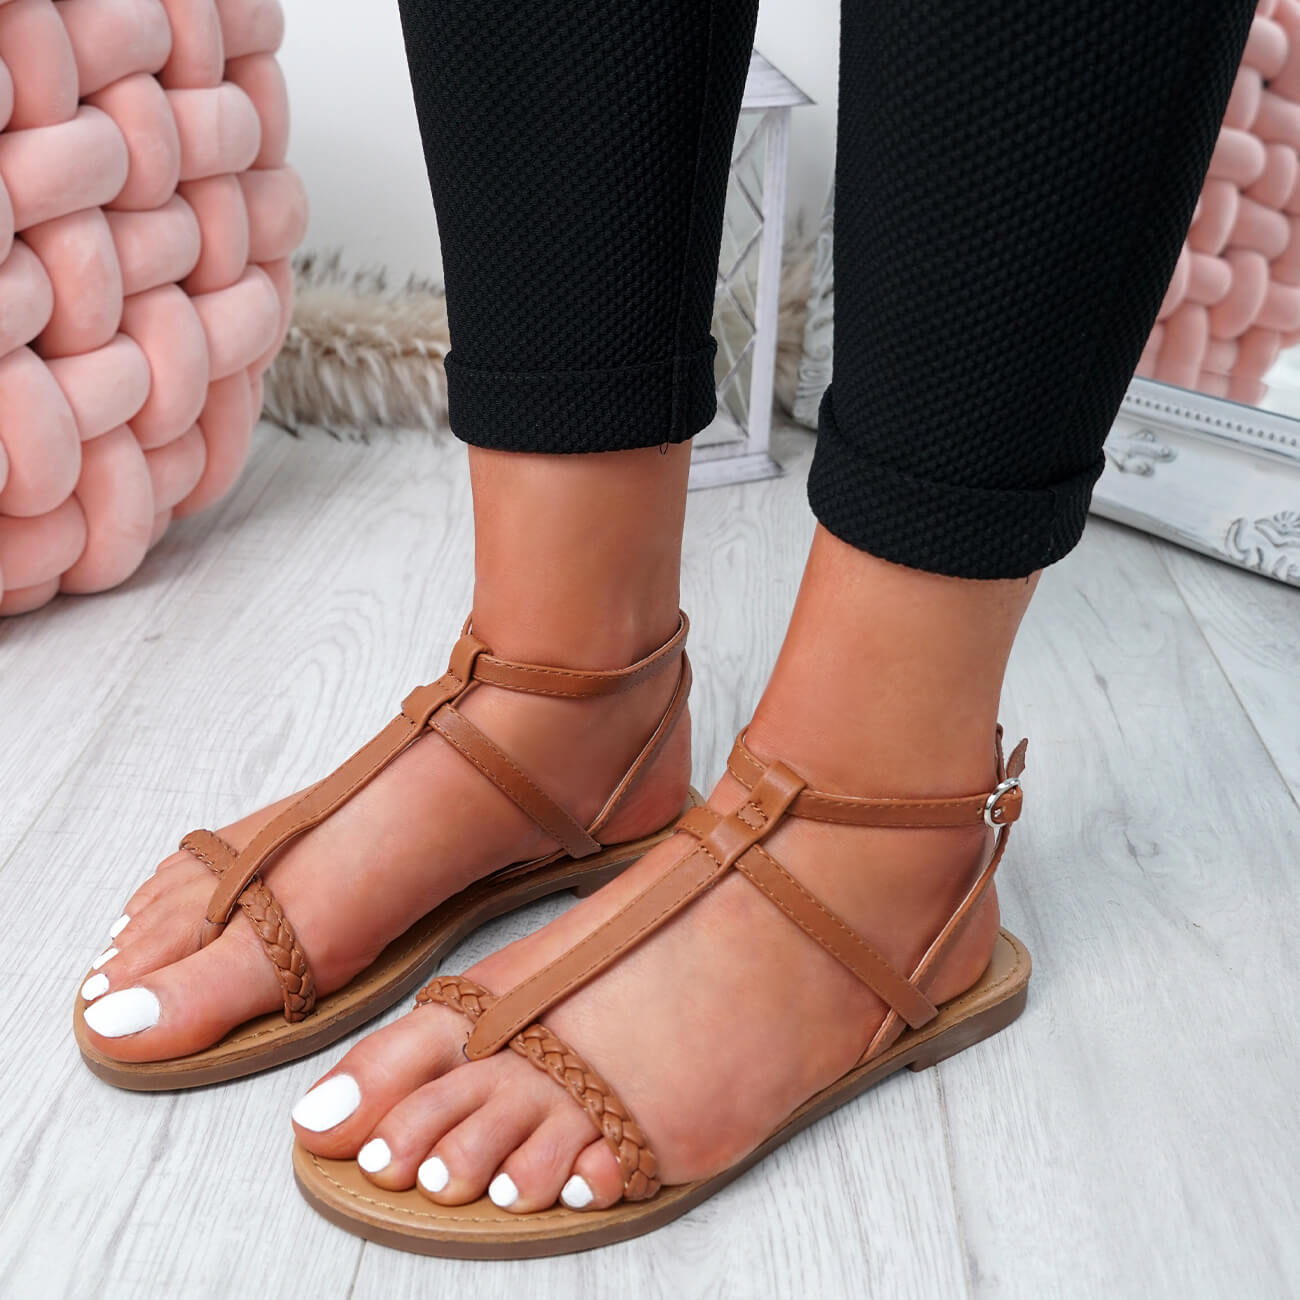 WOMENS-LADIES-T-STRAP-FLAT-SANDALS-BUCKLE-CASUAL-SUMMER-SHOES-SIZE-UK thumbnail 15